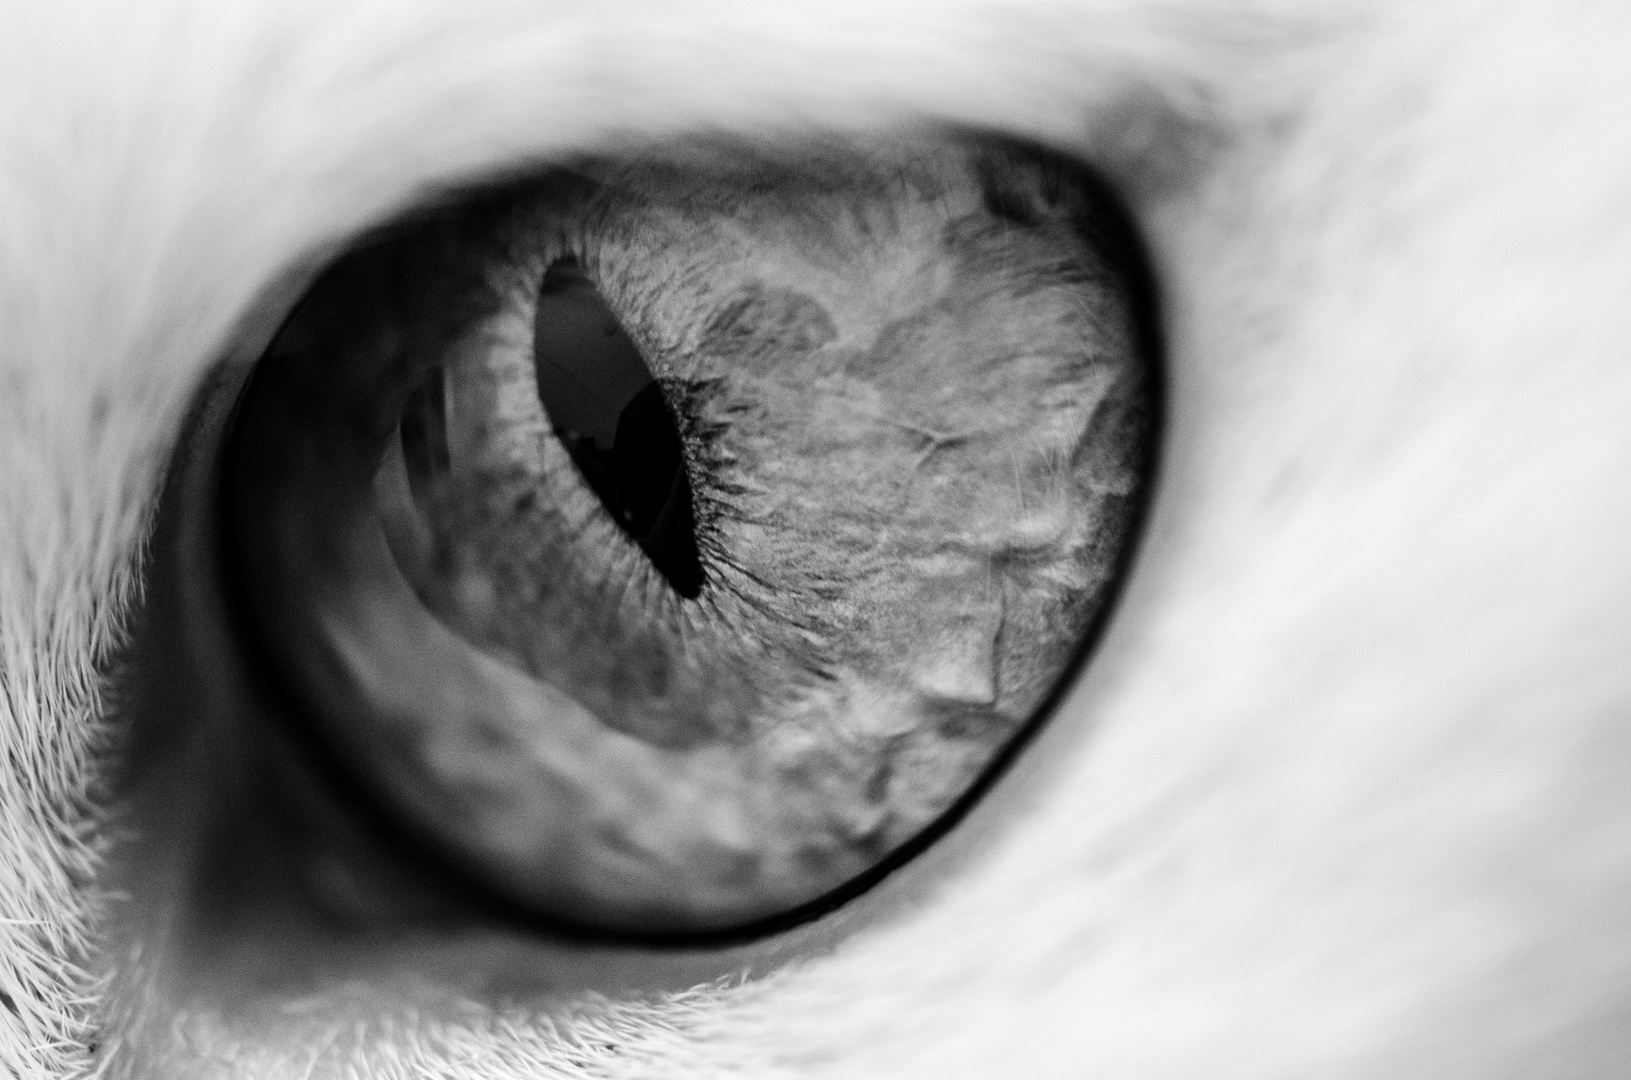 """The eye of the """"mini-tiger"""""""